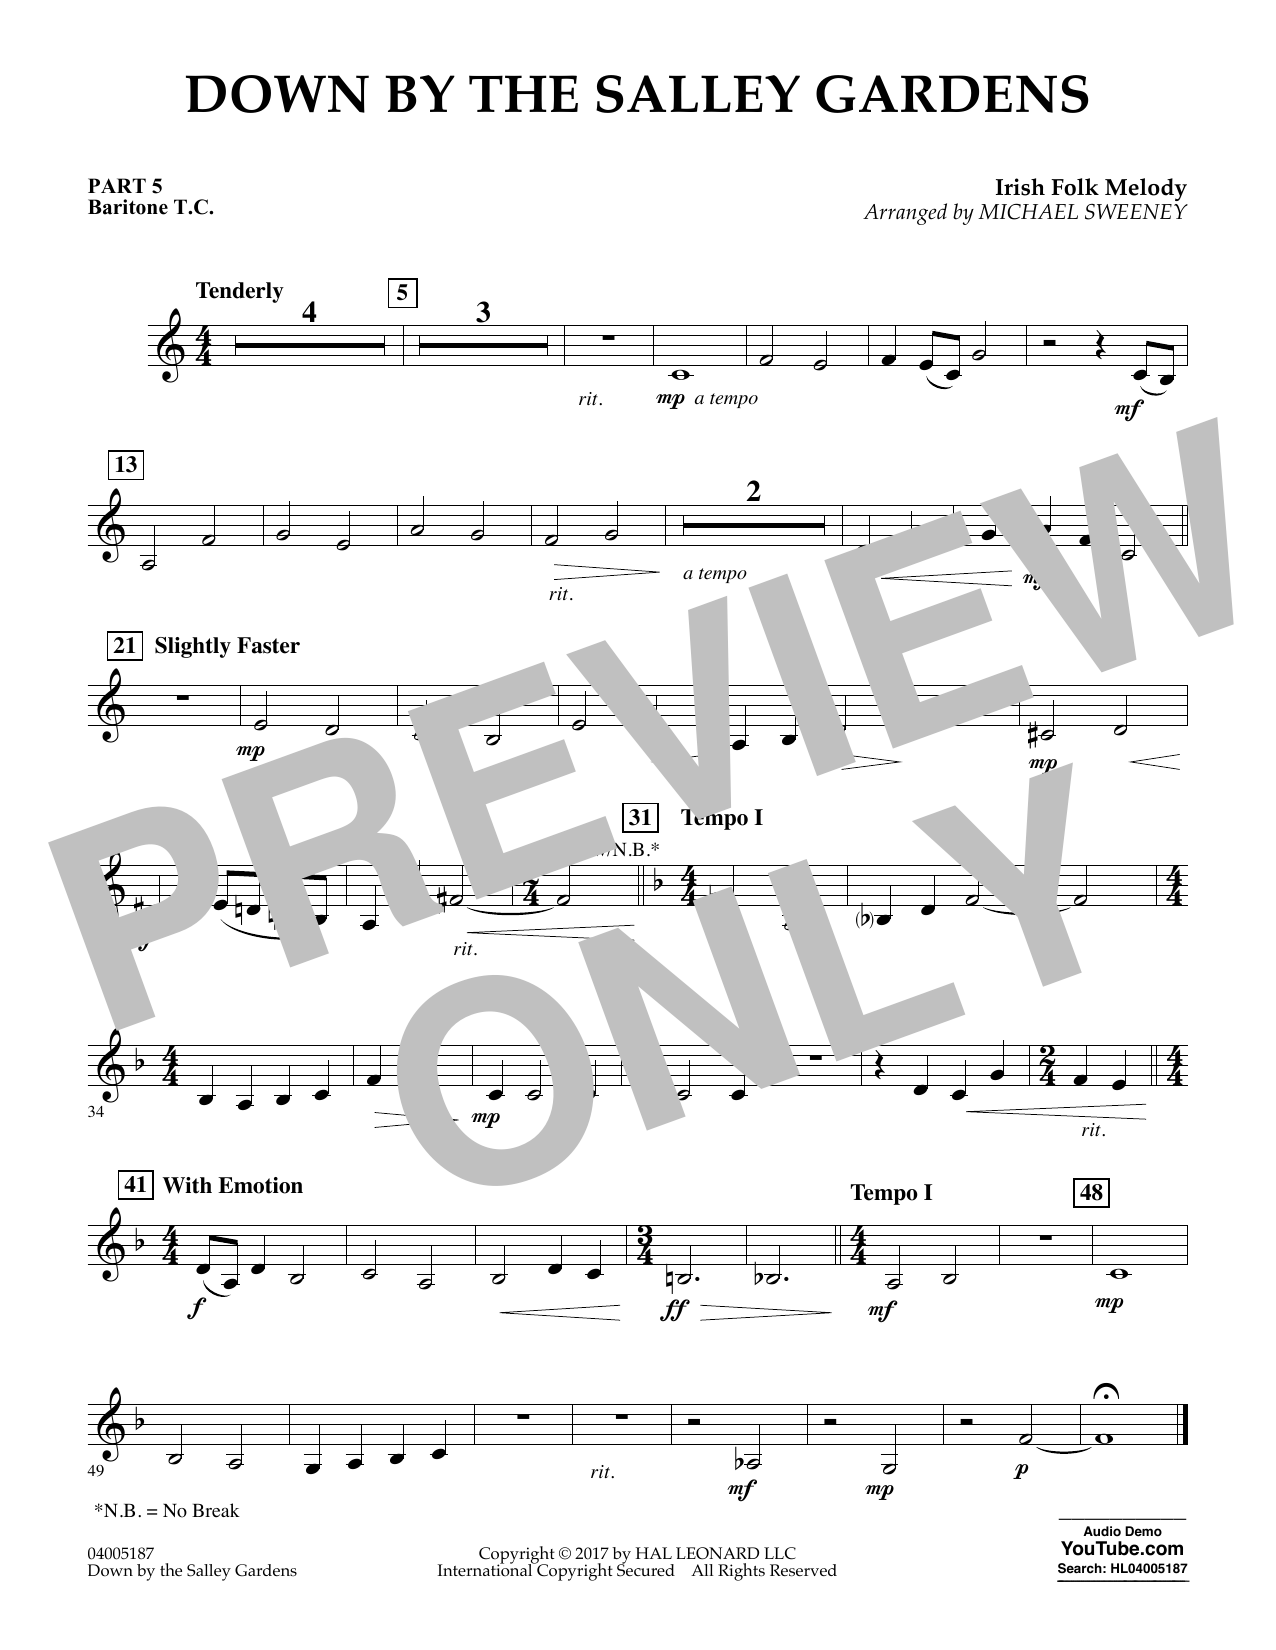 Down by the Salley Gardens - Pt.5 - Baritone T.C. (Flex-Band)